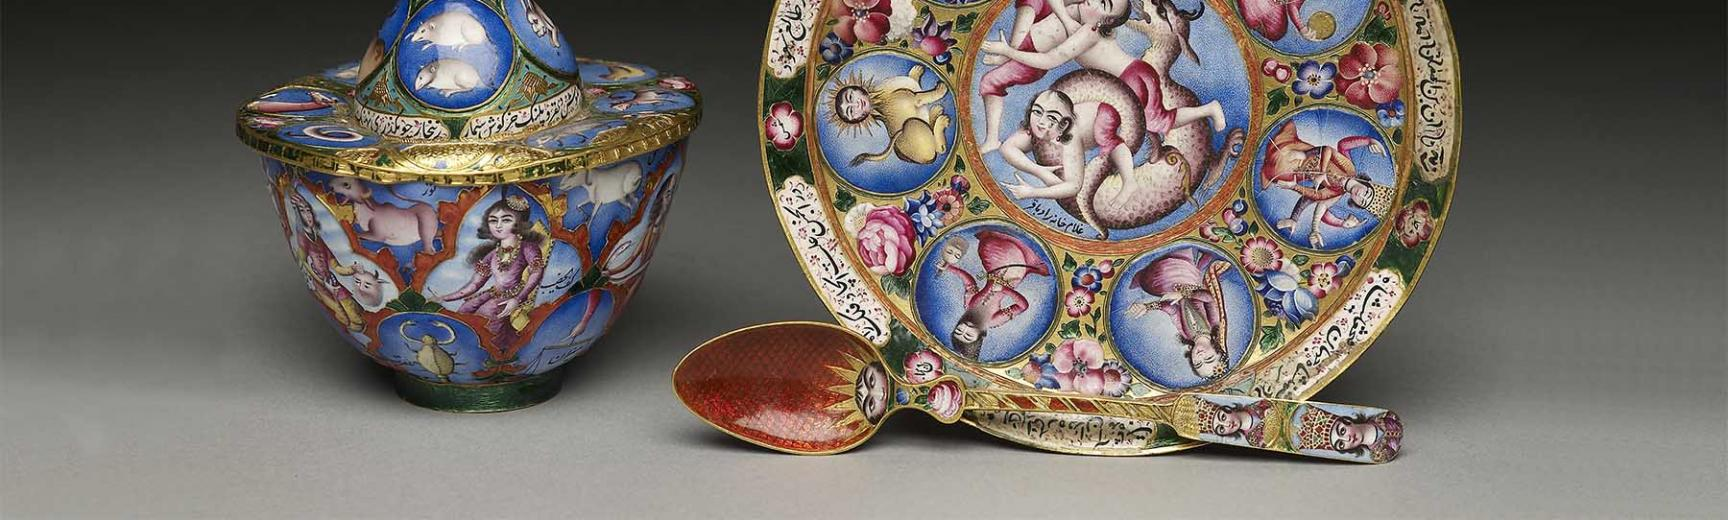 Enamel work coffee set from Iran